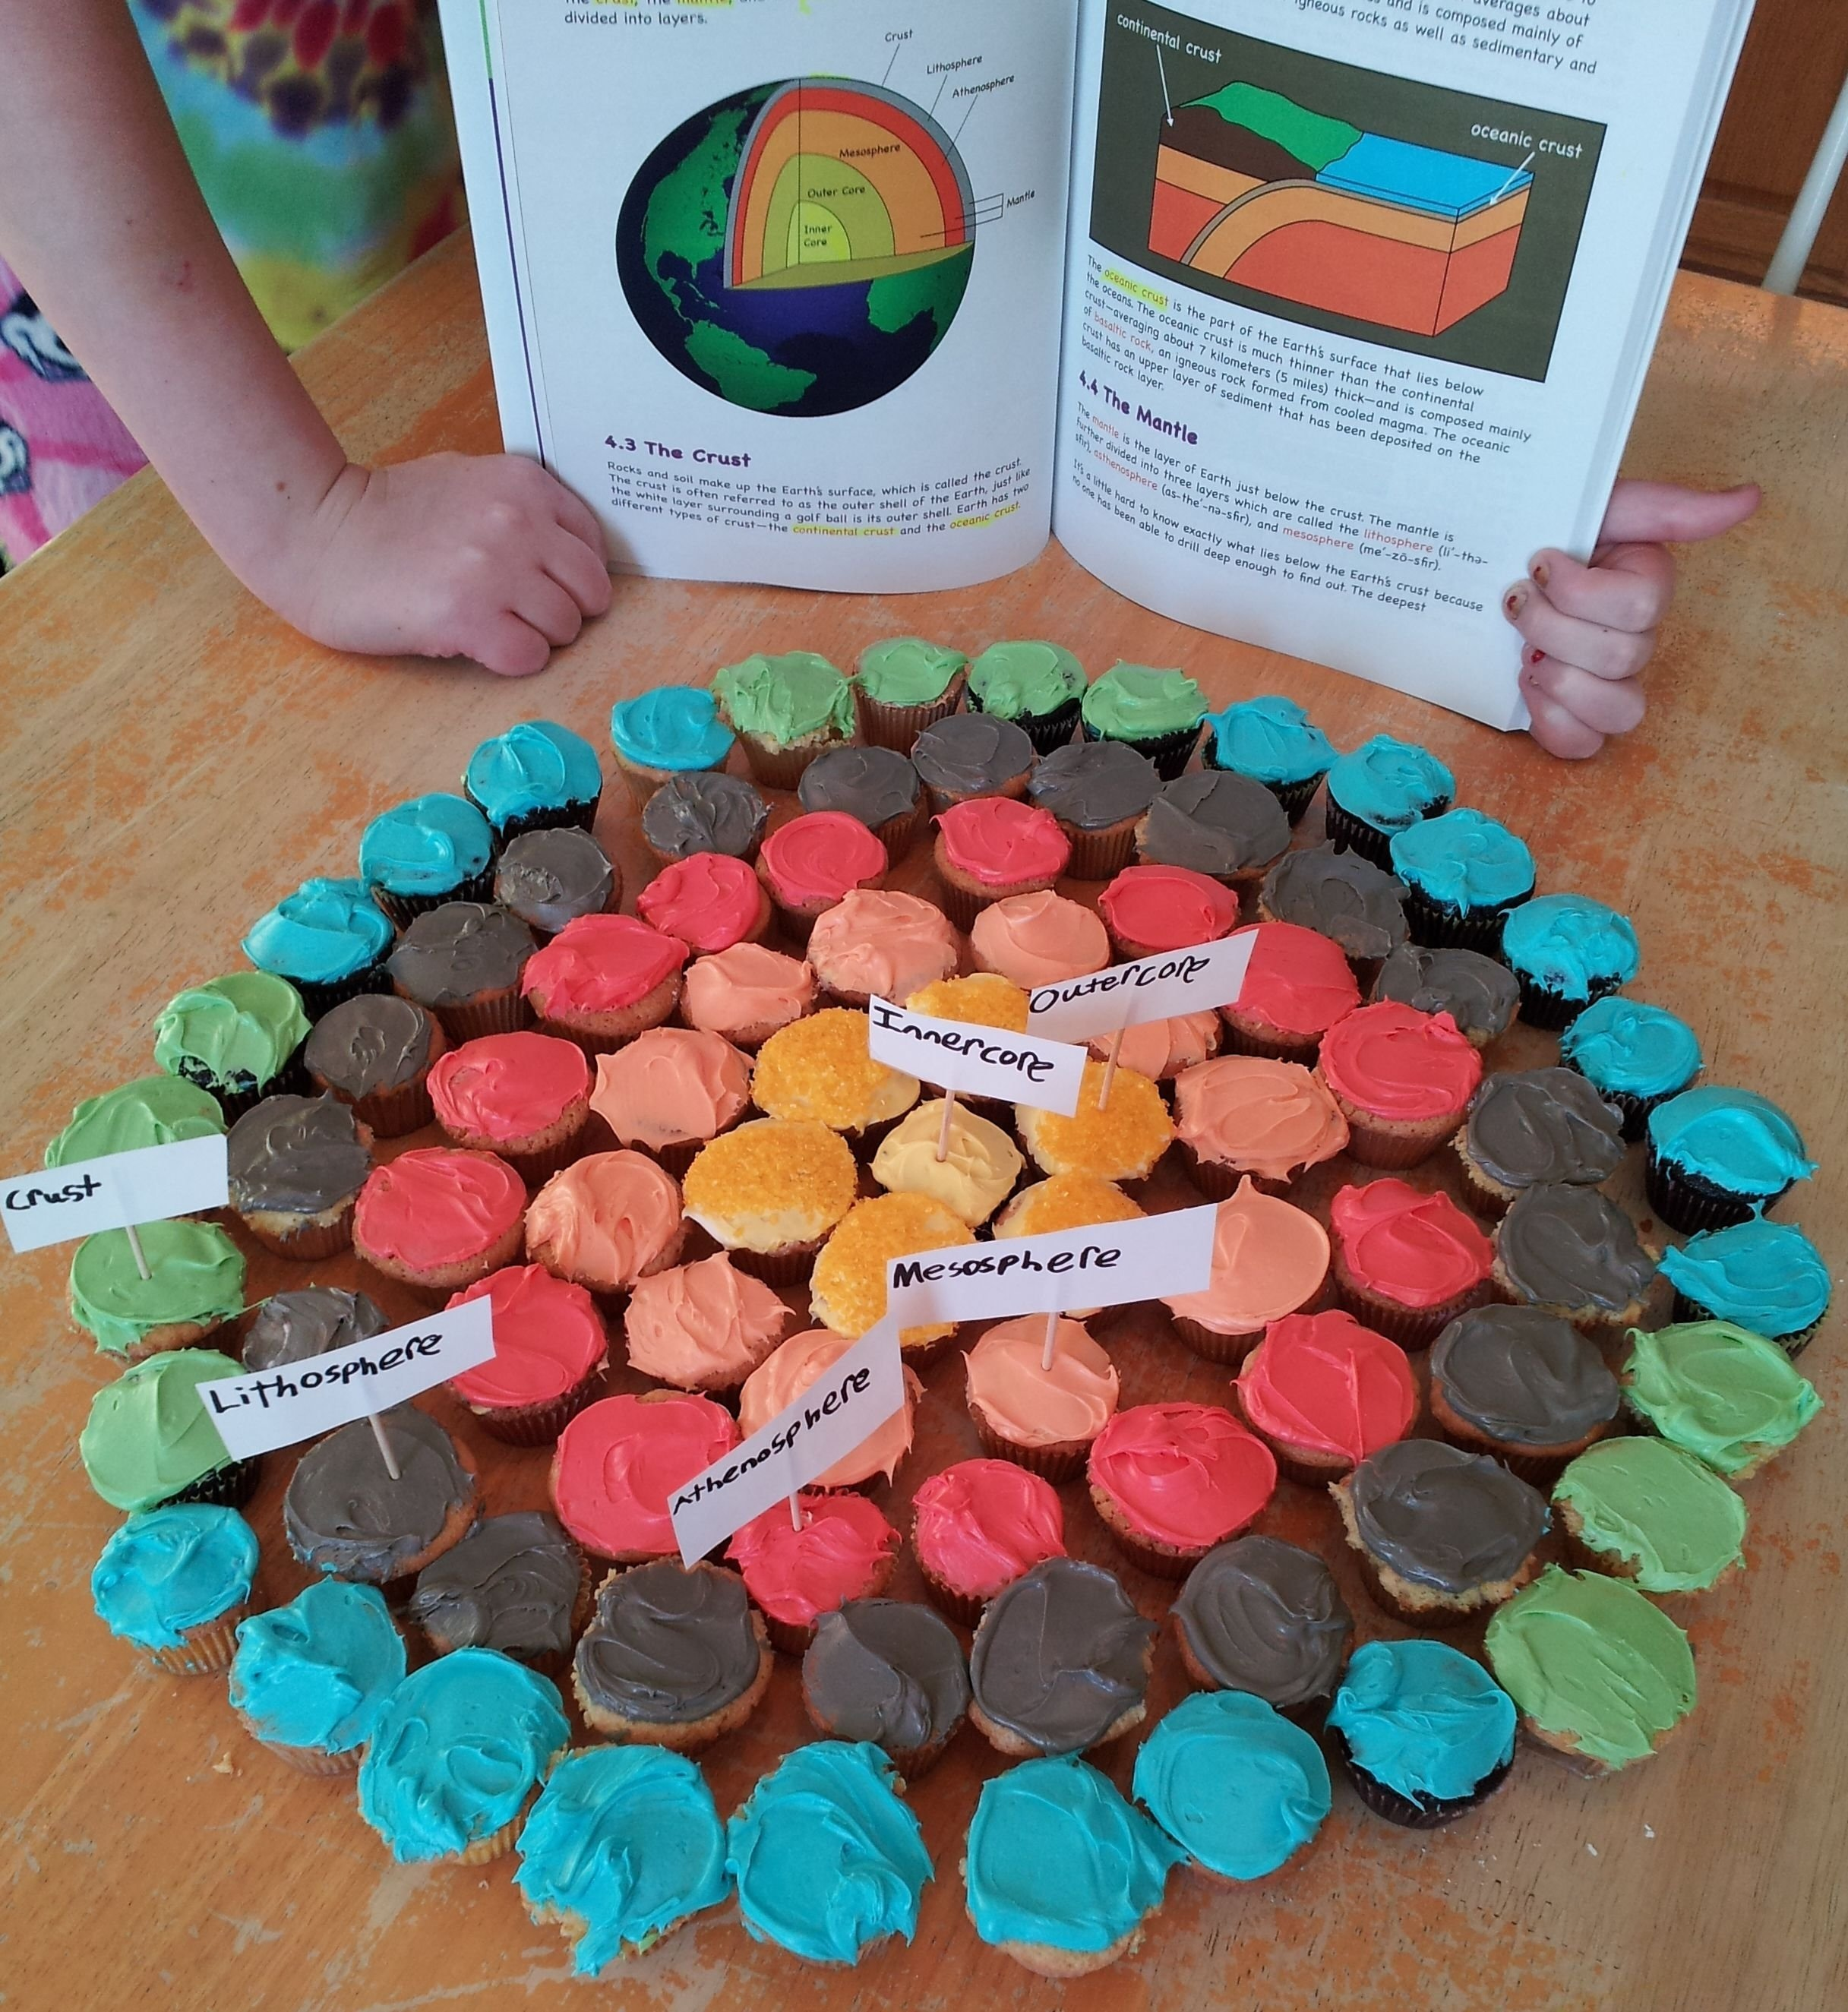 10 Famous Layers Of The Earth Project Ideas earth layers geology cupcakes project ideapaige age 10